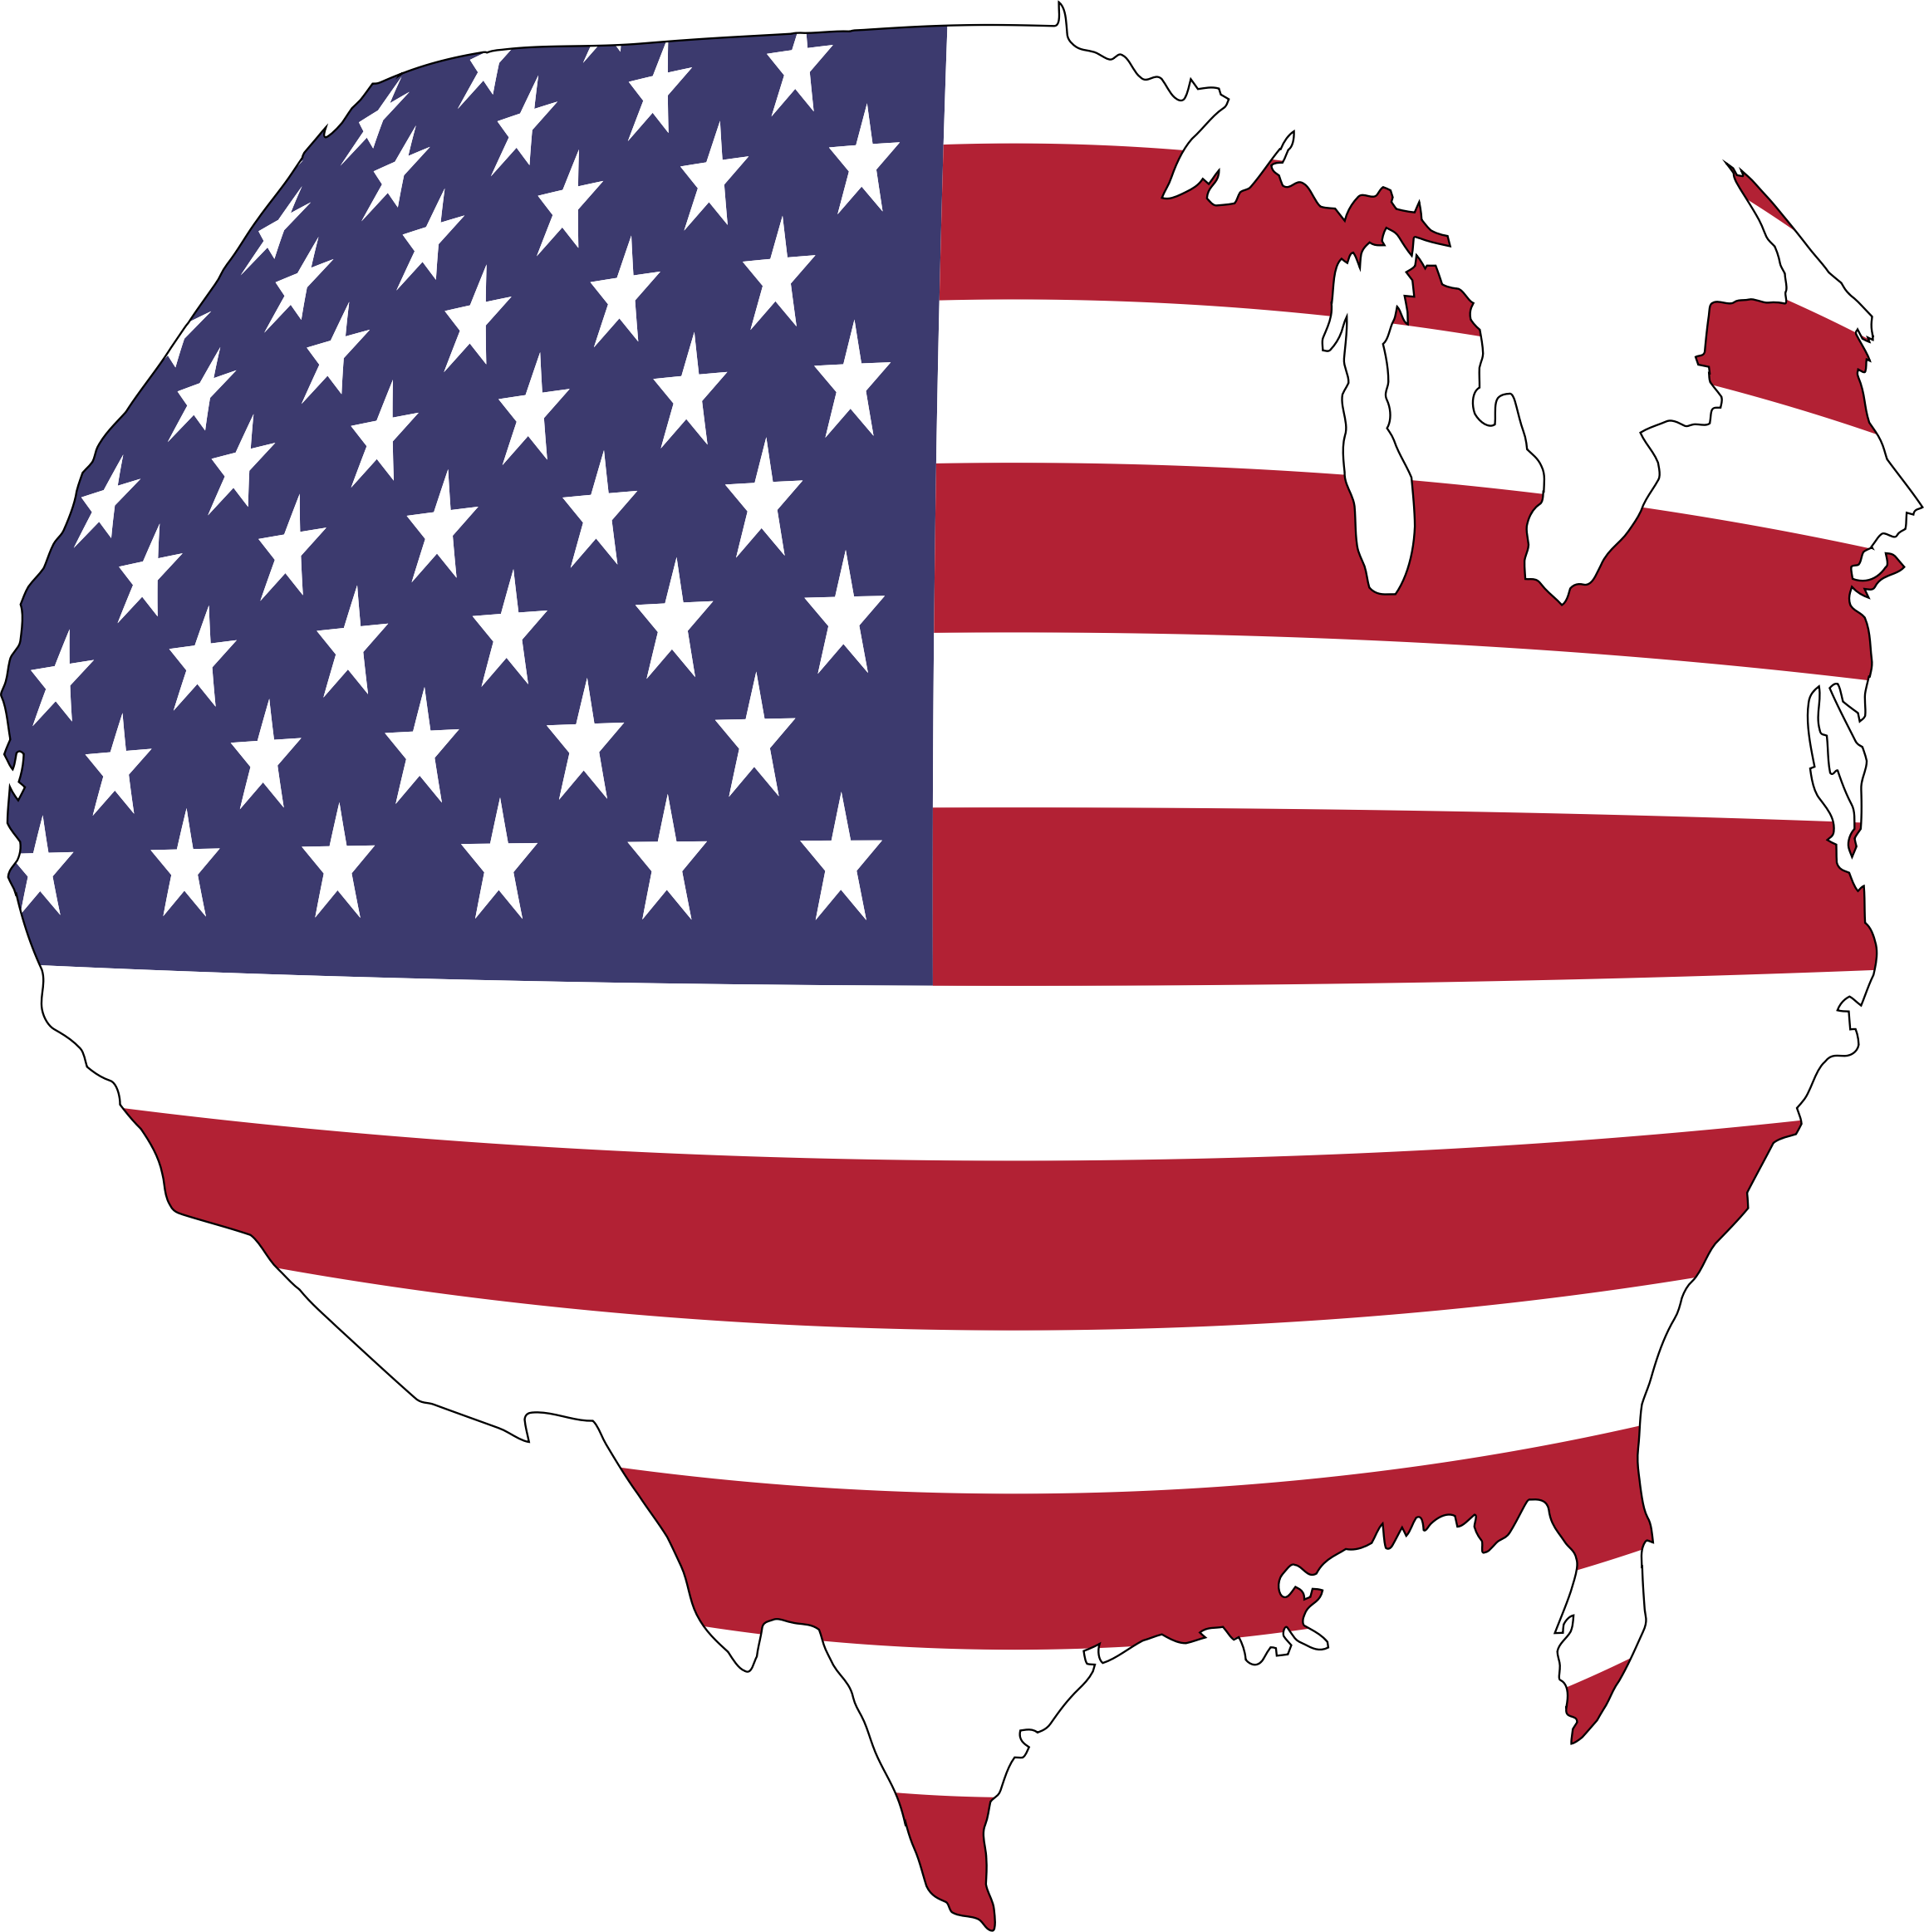 americas political map with America Flag Map Globe on Stock Illustration Colorful Americas Political Map likewise Ecuador together with Americas Caps Quiz together with Index further Americas Micronesia Problem.